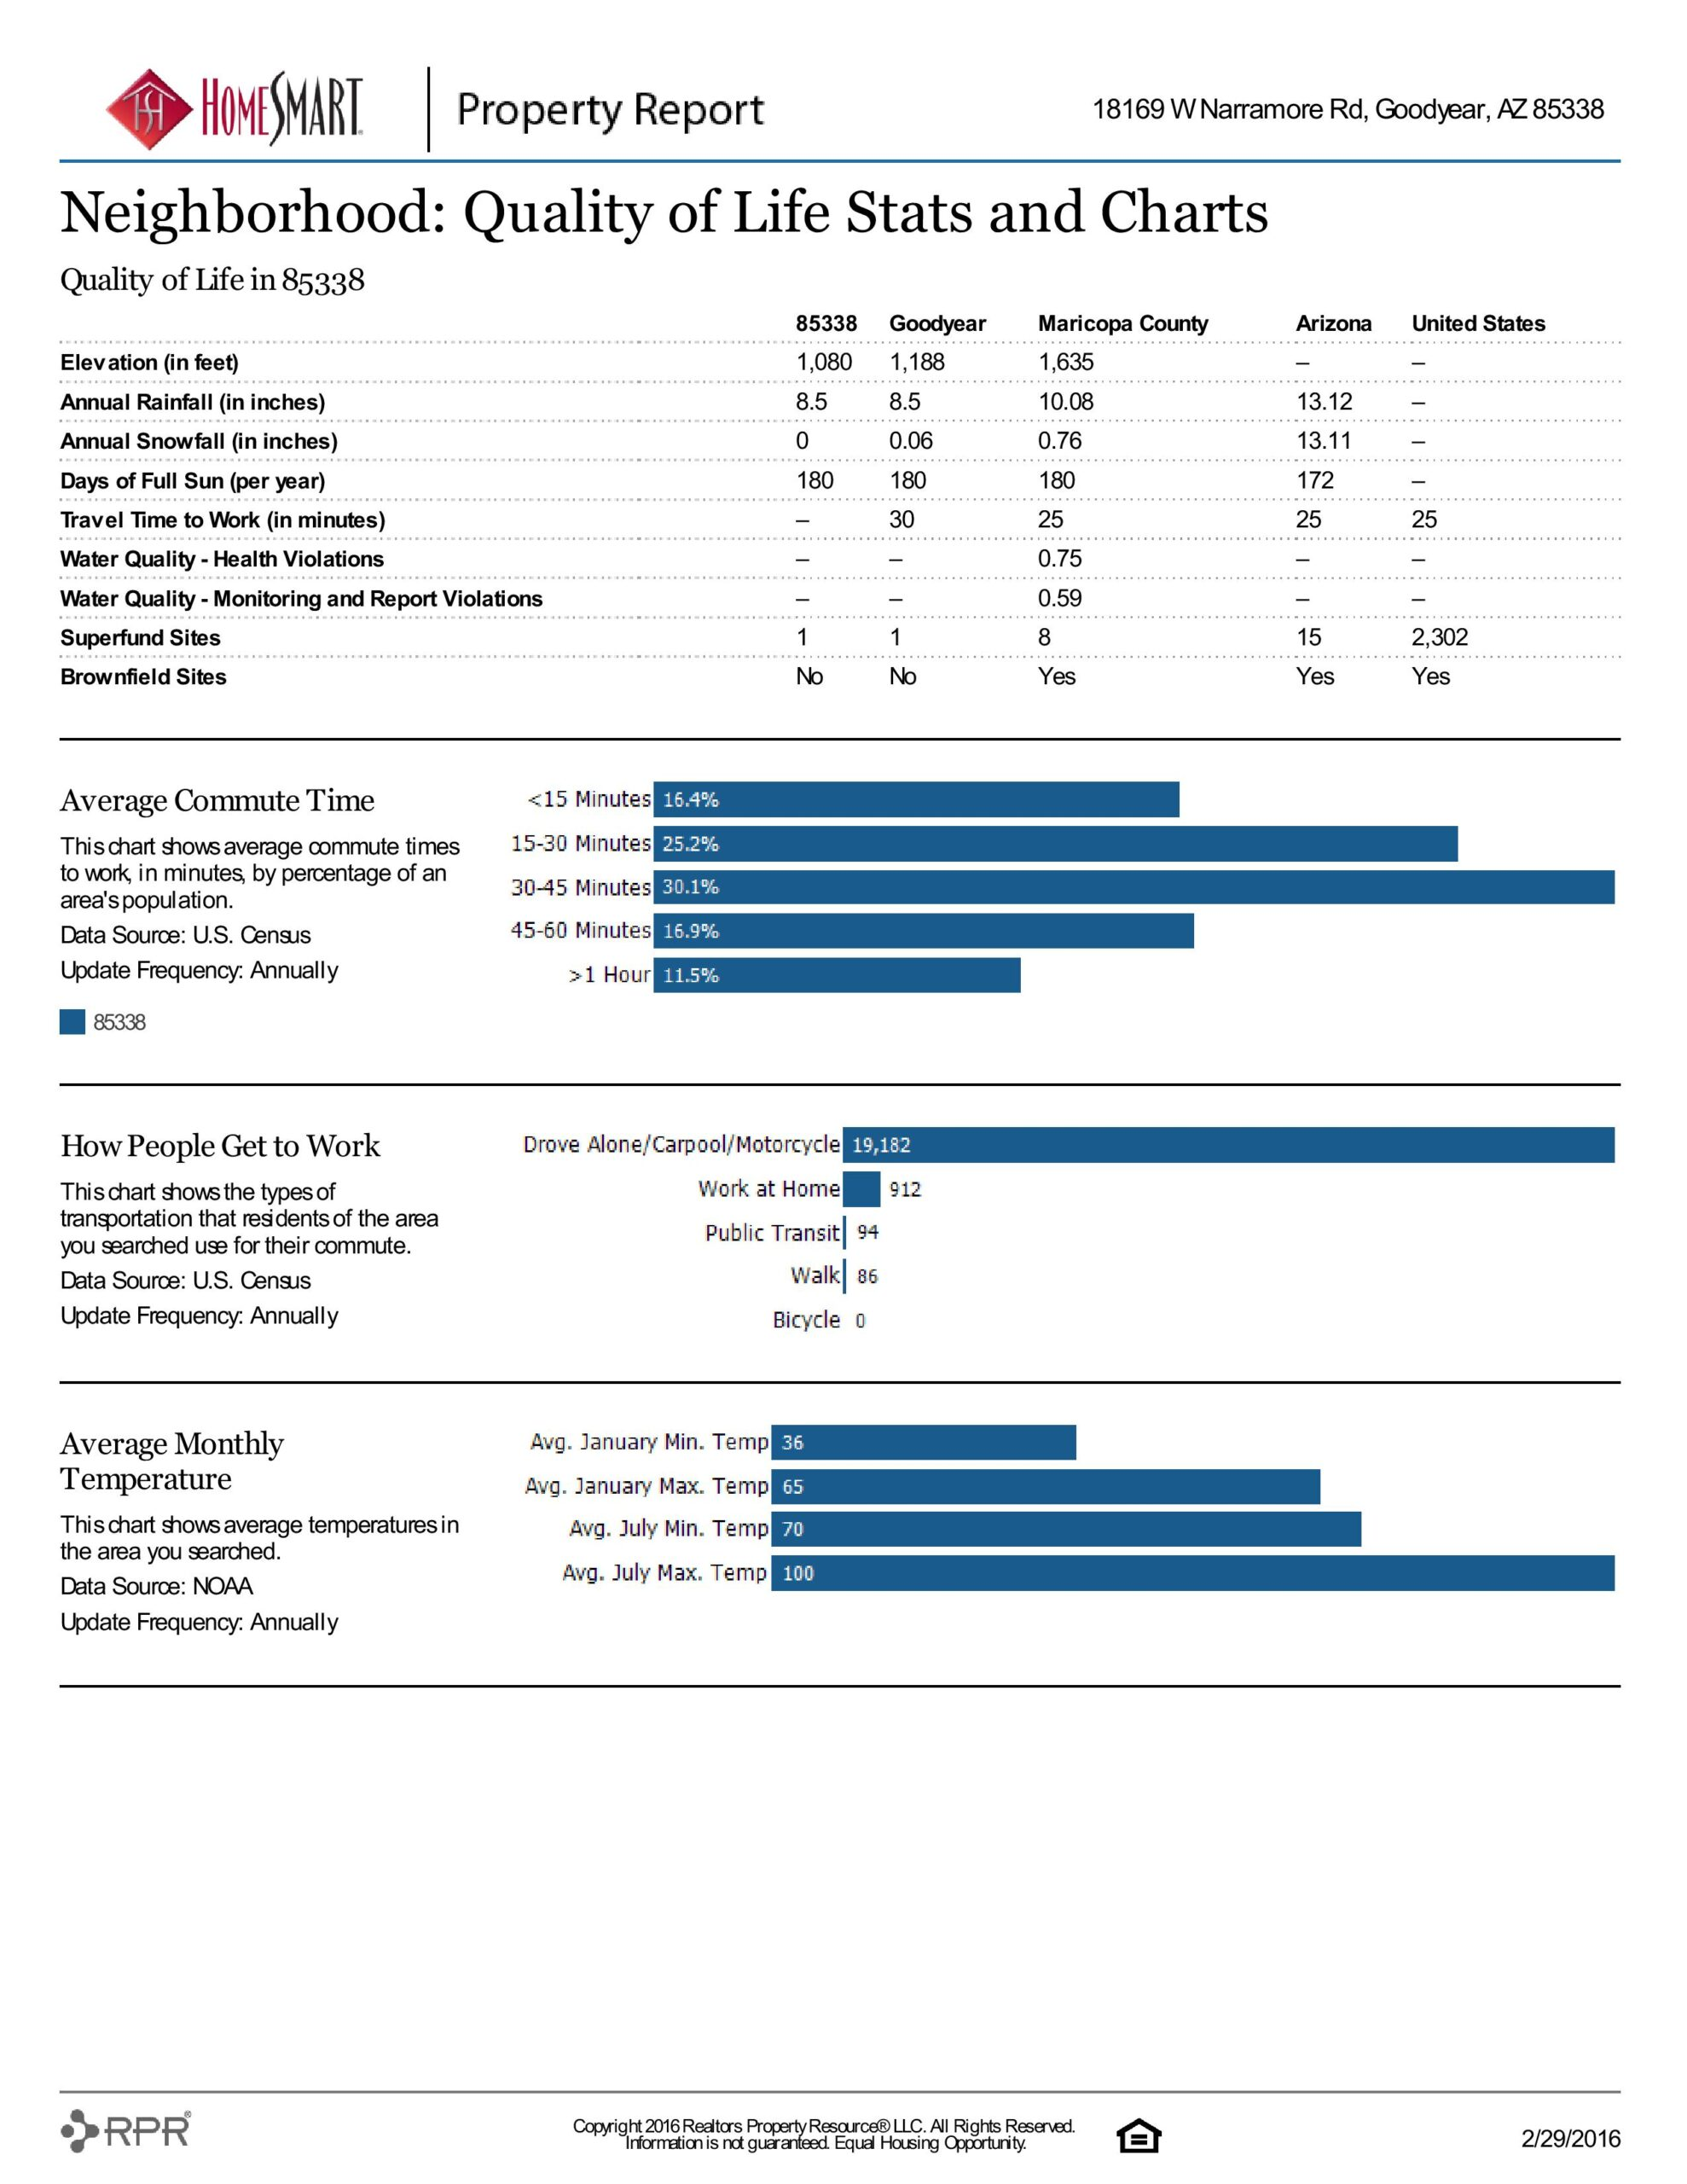 18169 W NARRAMORE RD PROPERTY REPORT-page-023